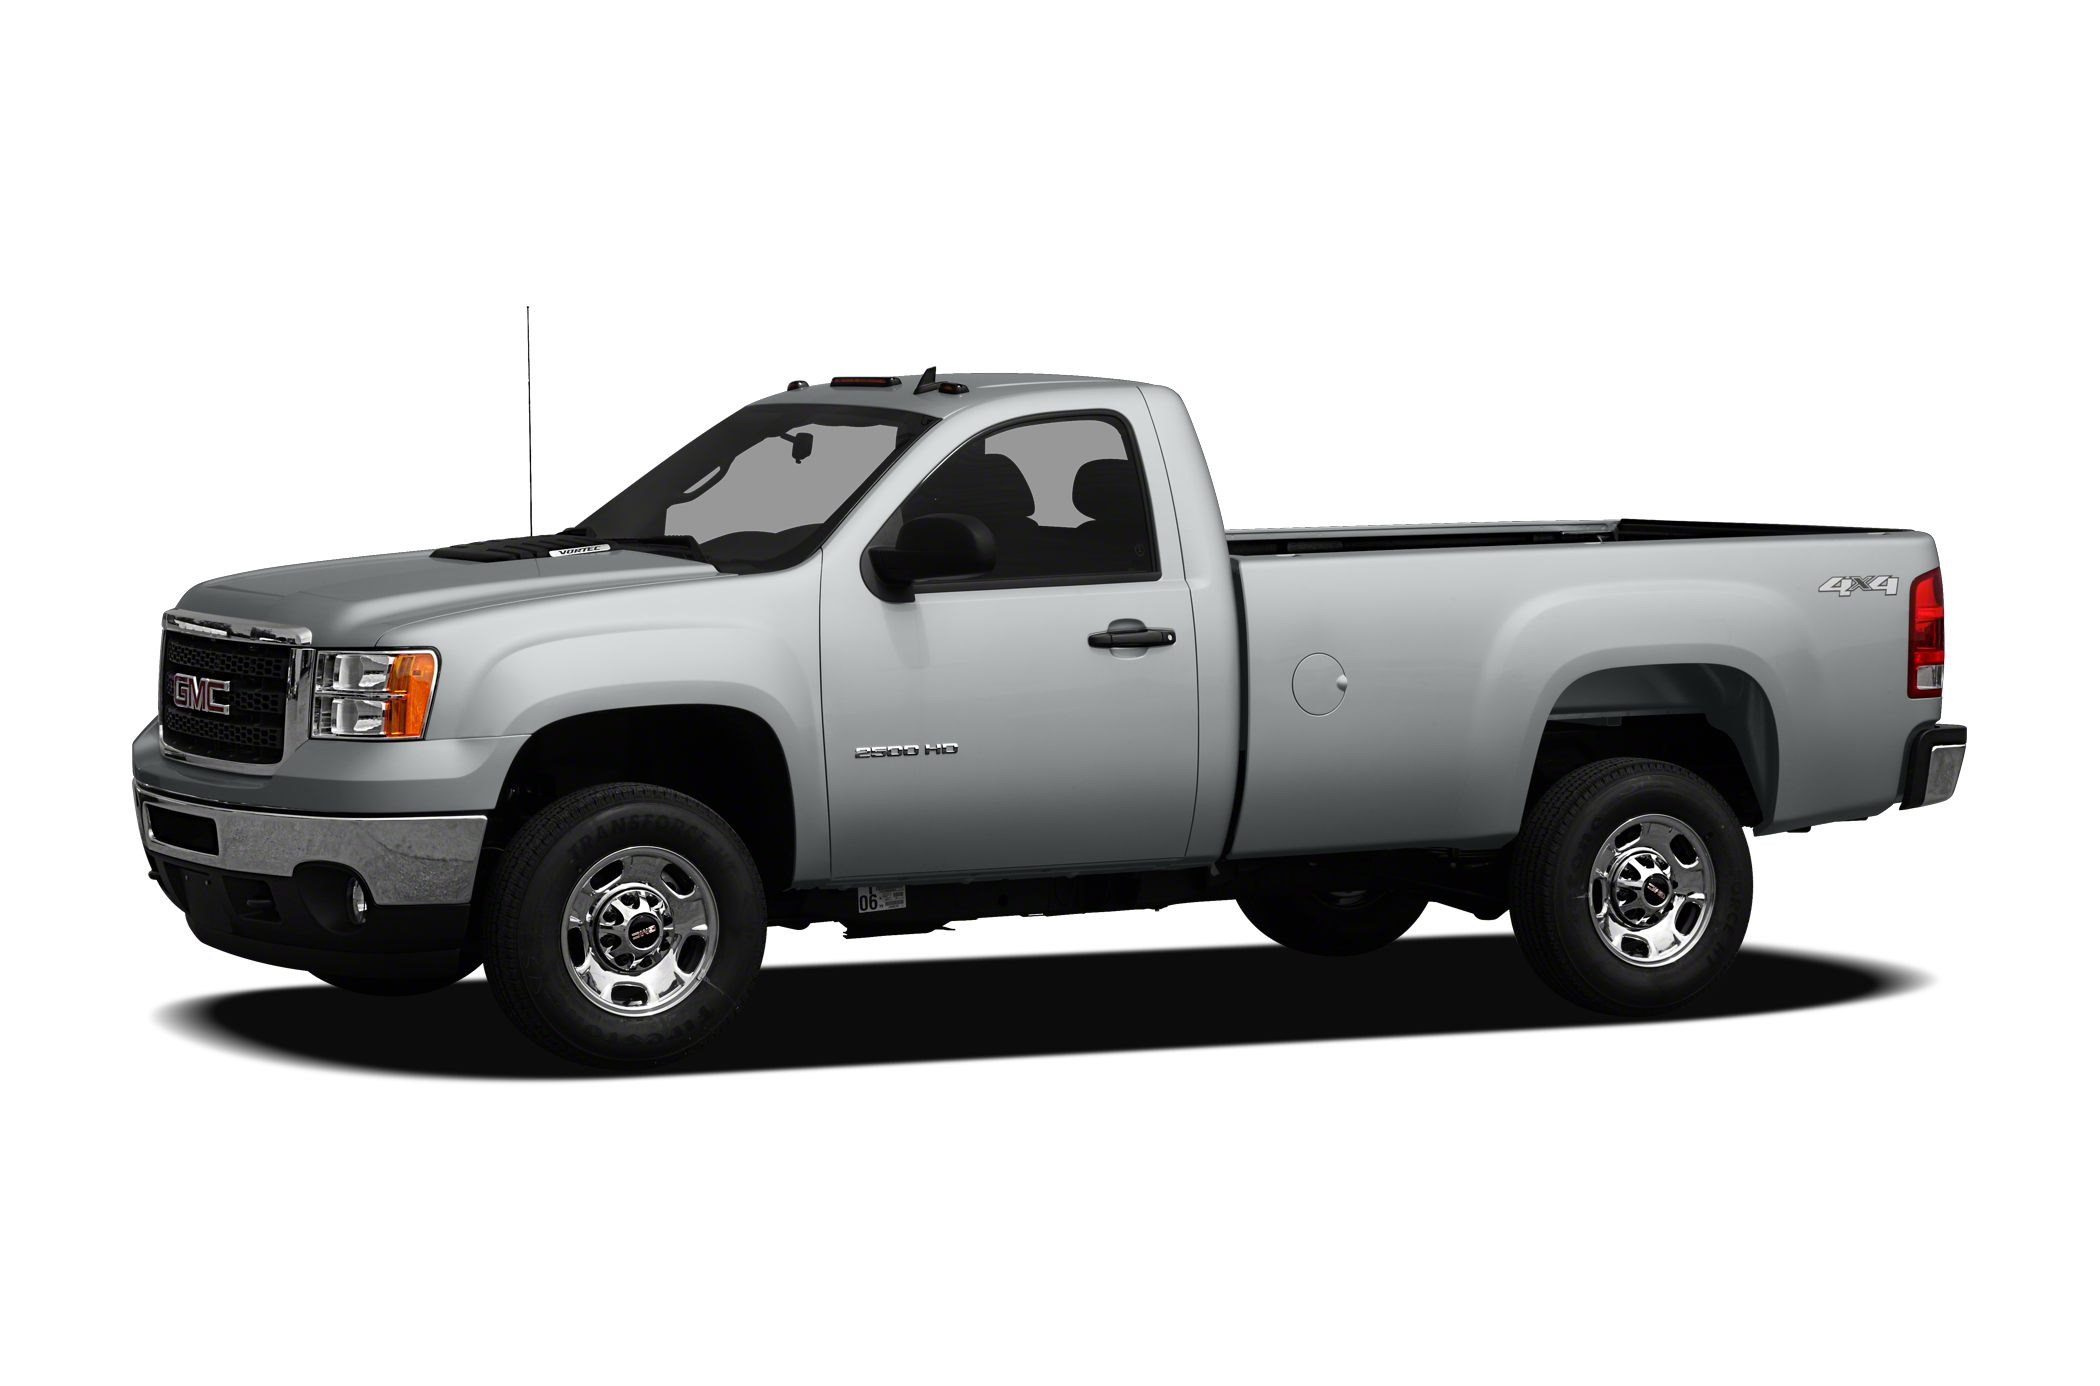 2012 GMC Sierra 2500 SLE Crew Cab Pickup for sale in Morton for $32,496 with 55,768 miles.